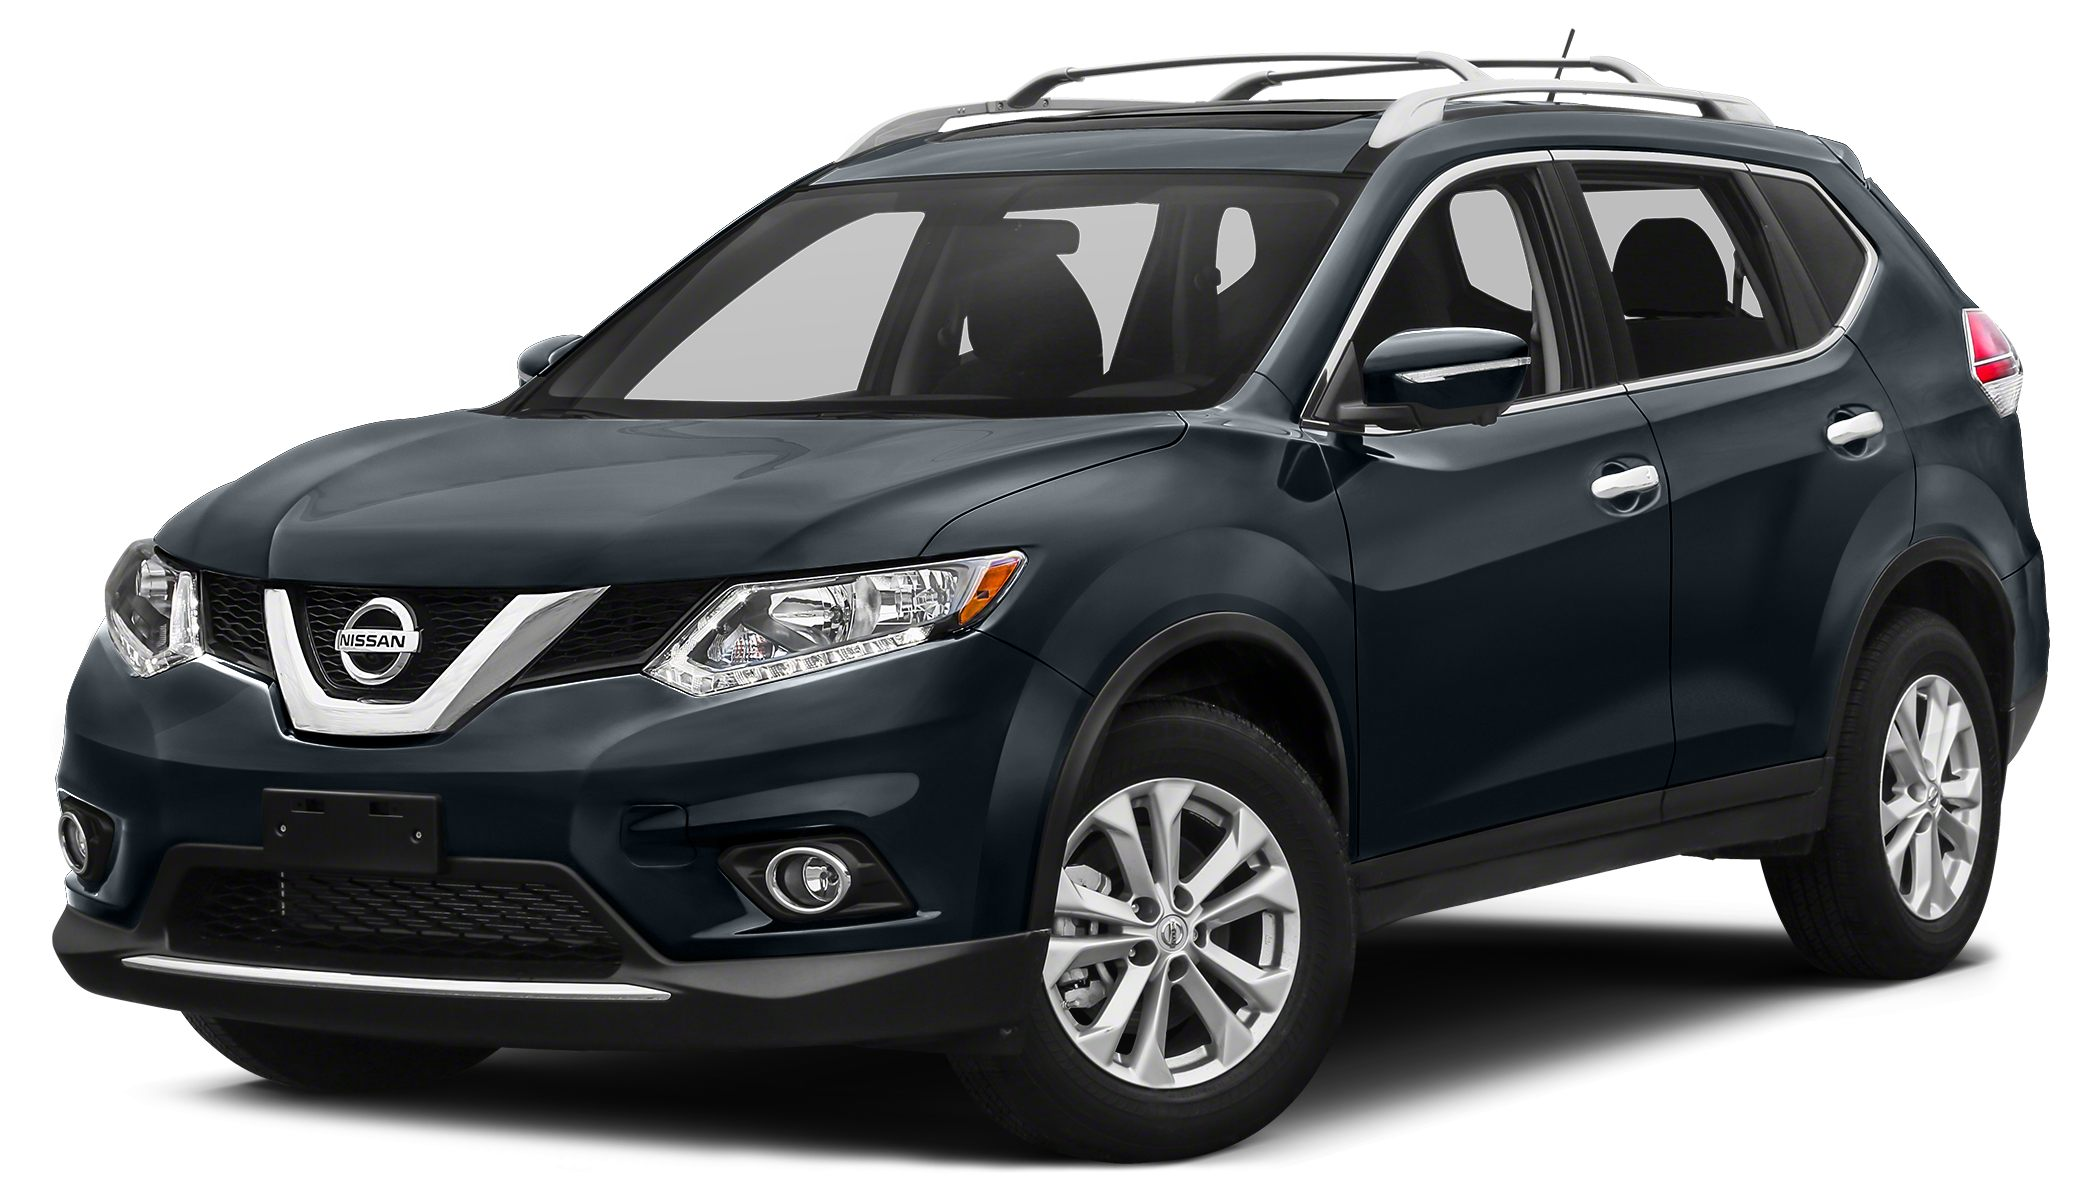 2014 Nissan Rogue SL WE SELL OUR VEHICLES AT WHOLESALE PRICES AND STAND BEHIND OUR CARS  COME